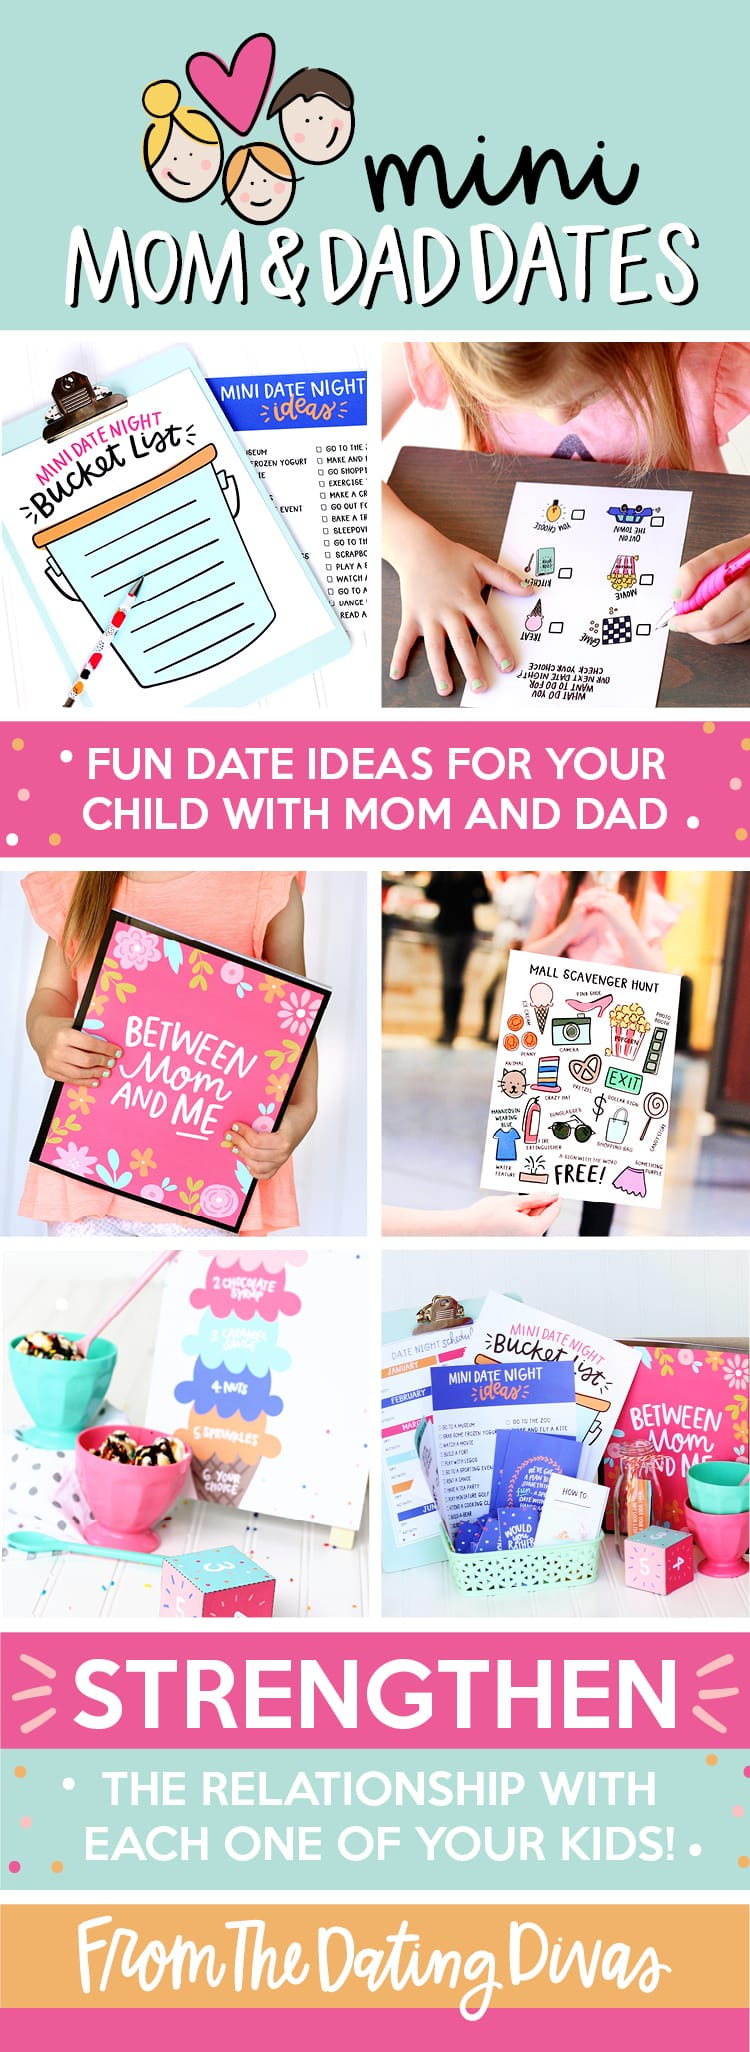 Mother's Day Sale - Date Night with Your Kids Ideas